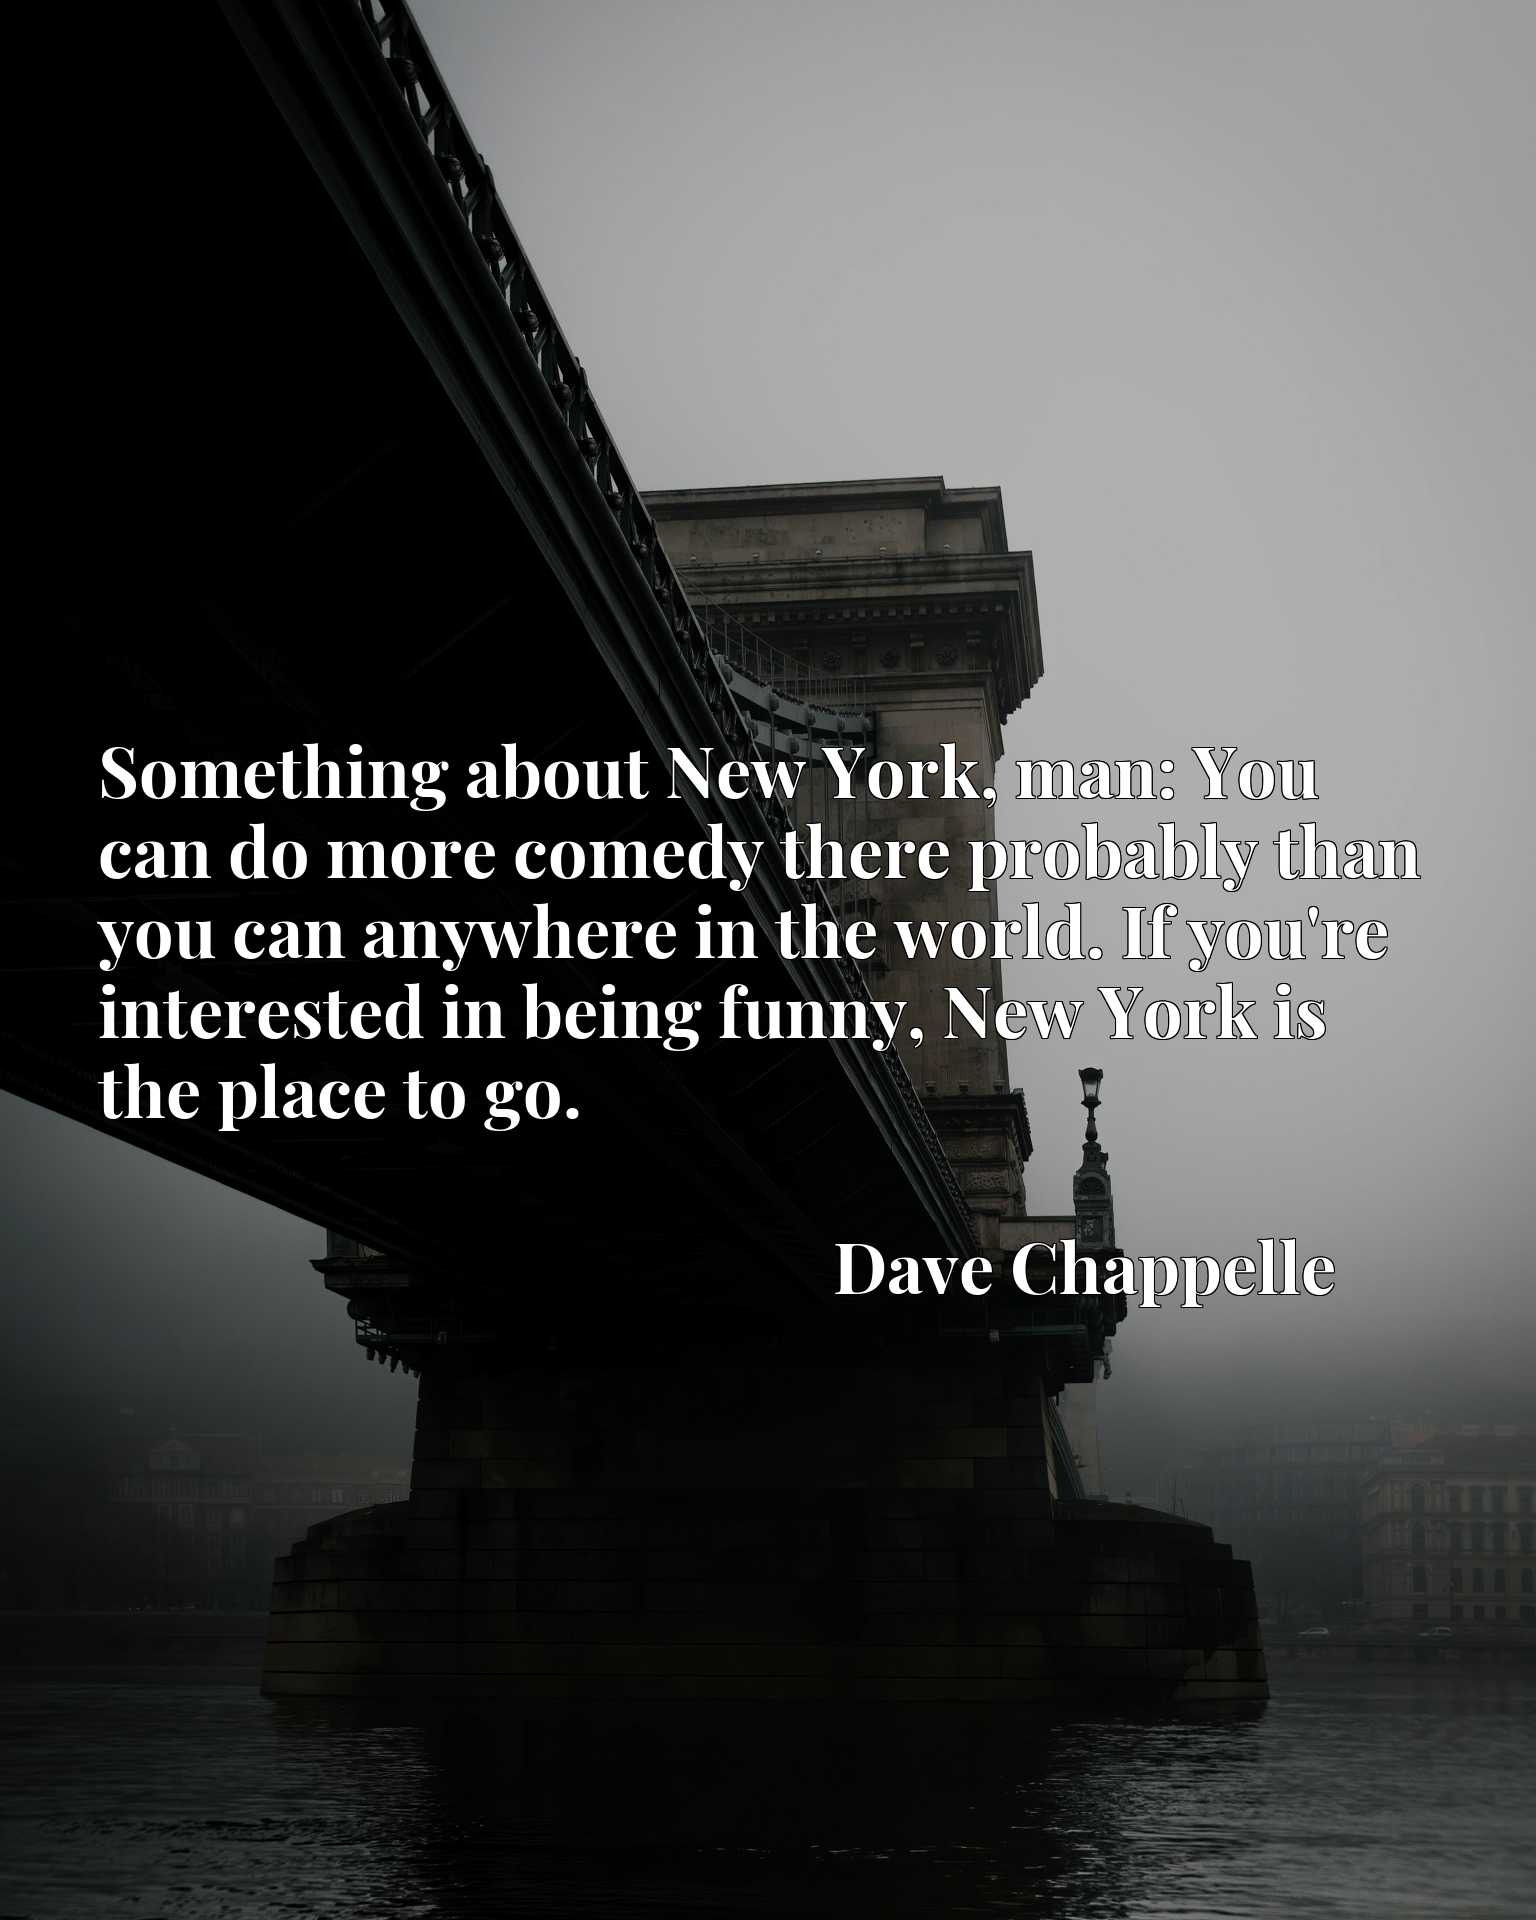 Something about New York, man: You can do more comedy there probably than you can anywhere in the world. If you're interested in being funny, New York is the place to go.